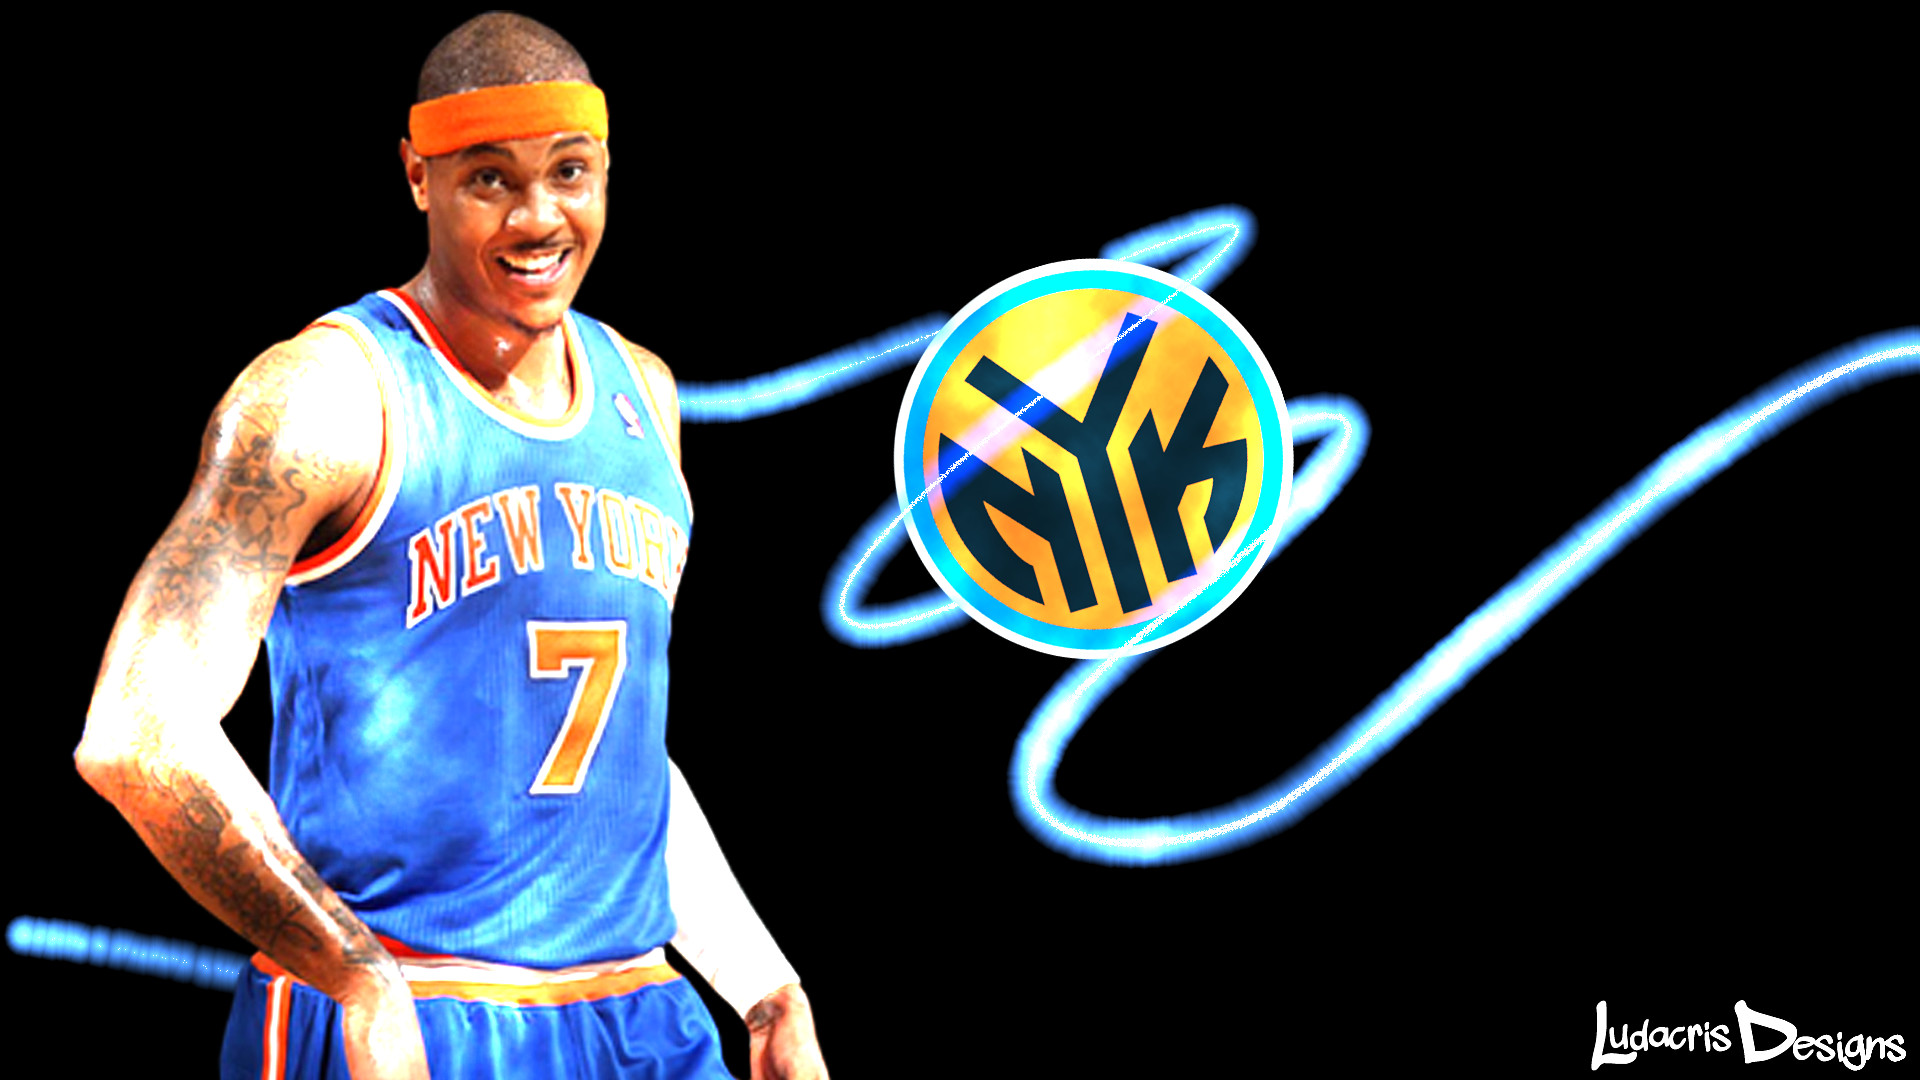 1920x1080 Carmelo Anthony Wallpapers Free Download.